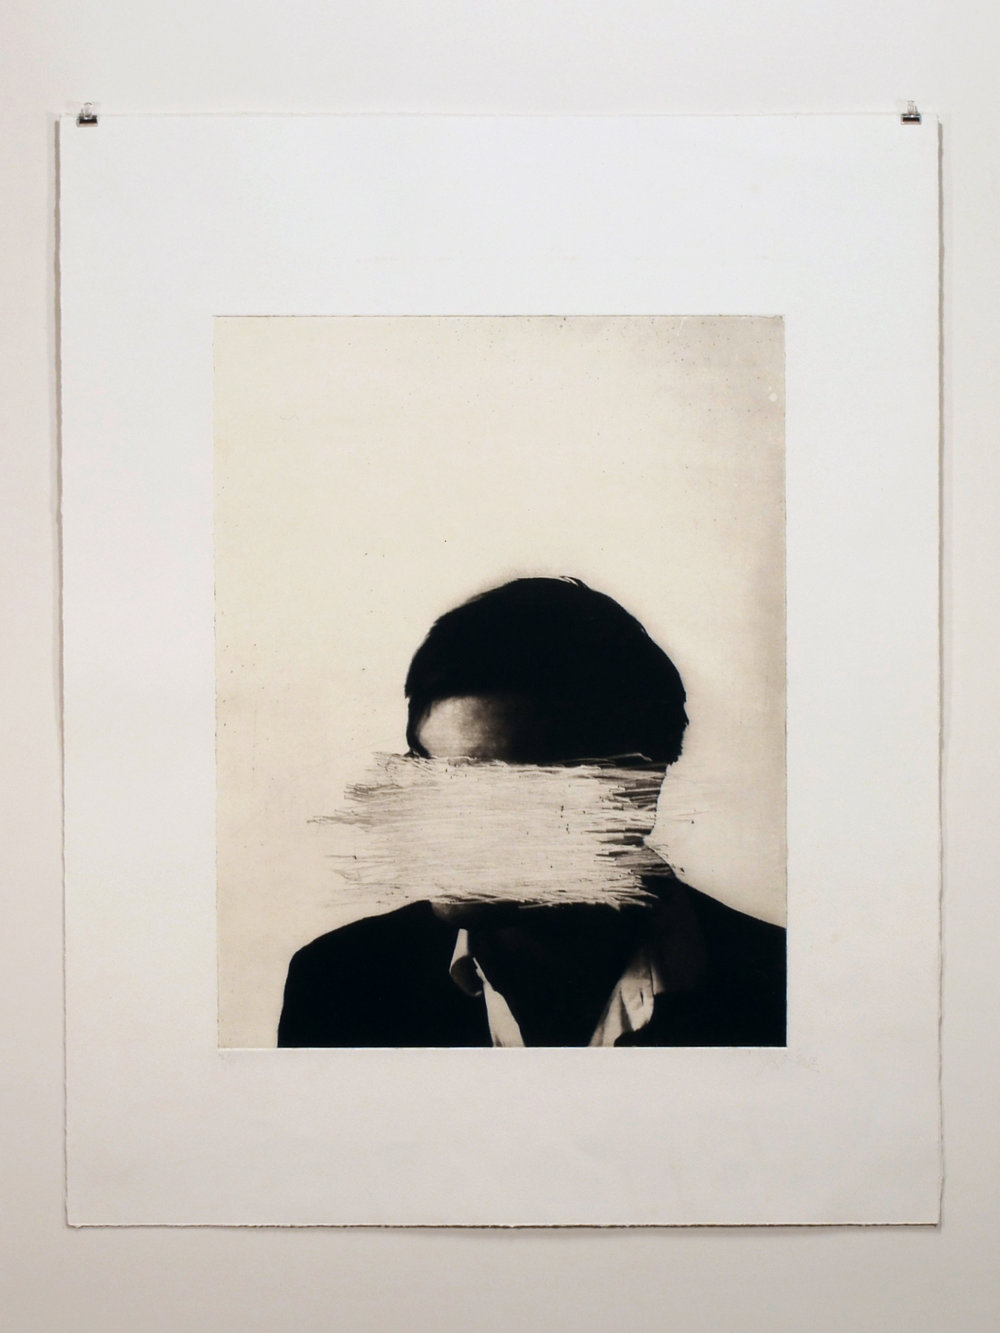 20 x 26 photogravure & drypoint on Somerset Satin with gampi chine-collé